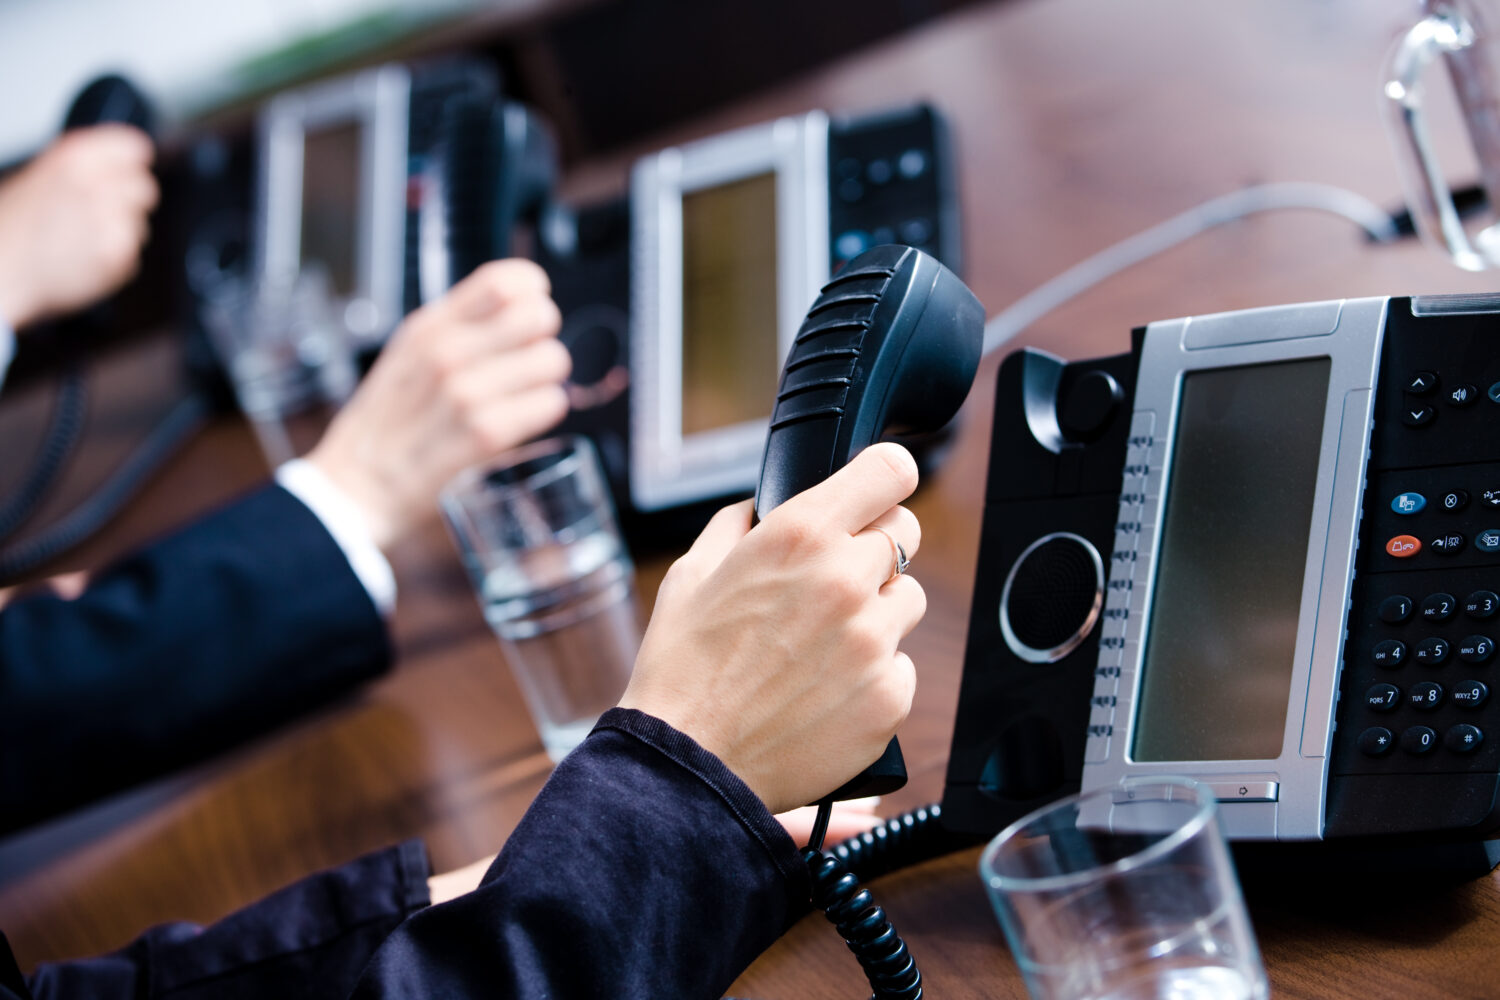 Close-up of hands holding landline phone receivers